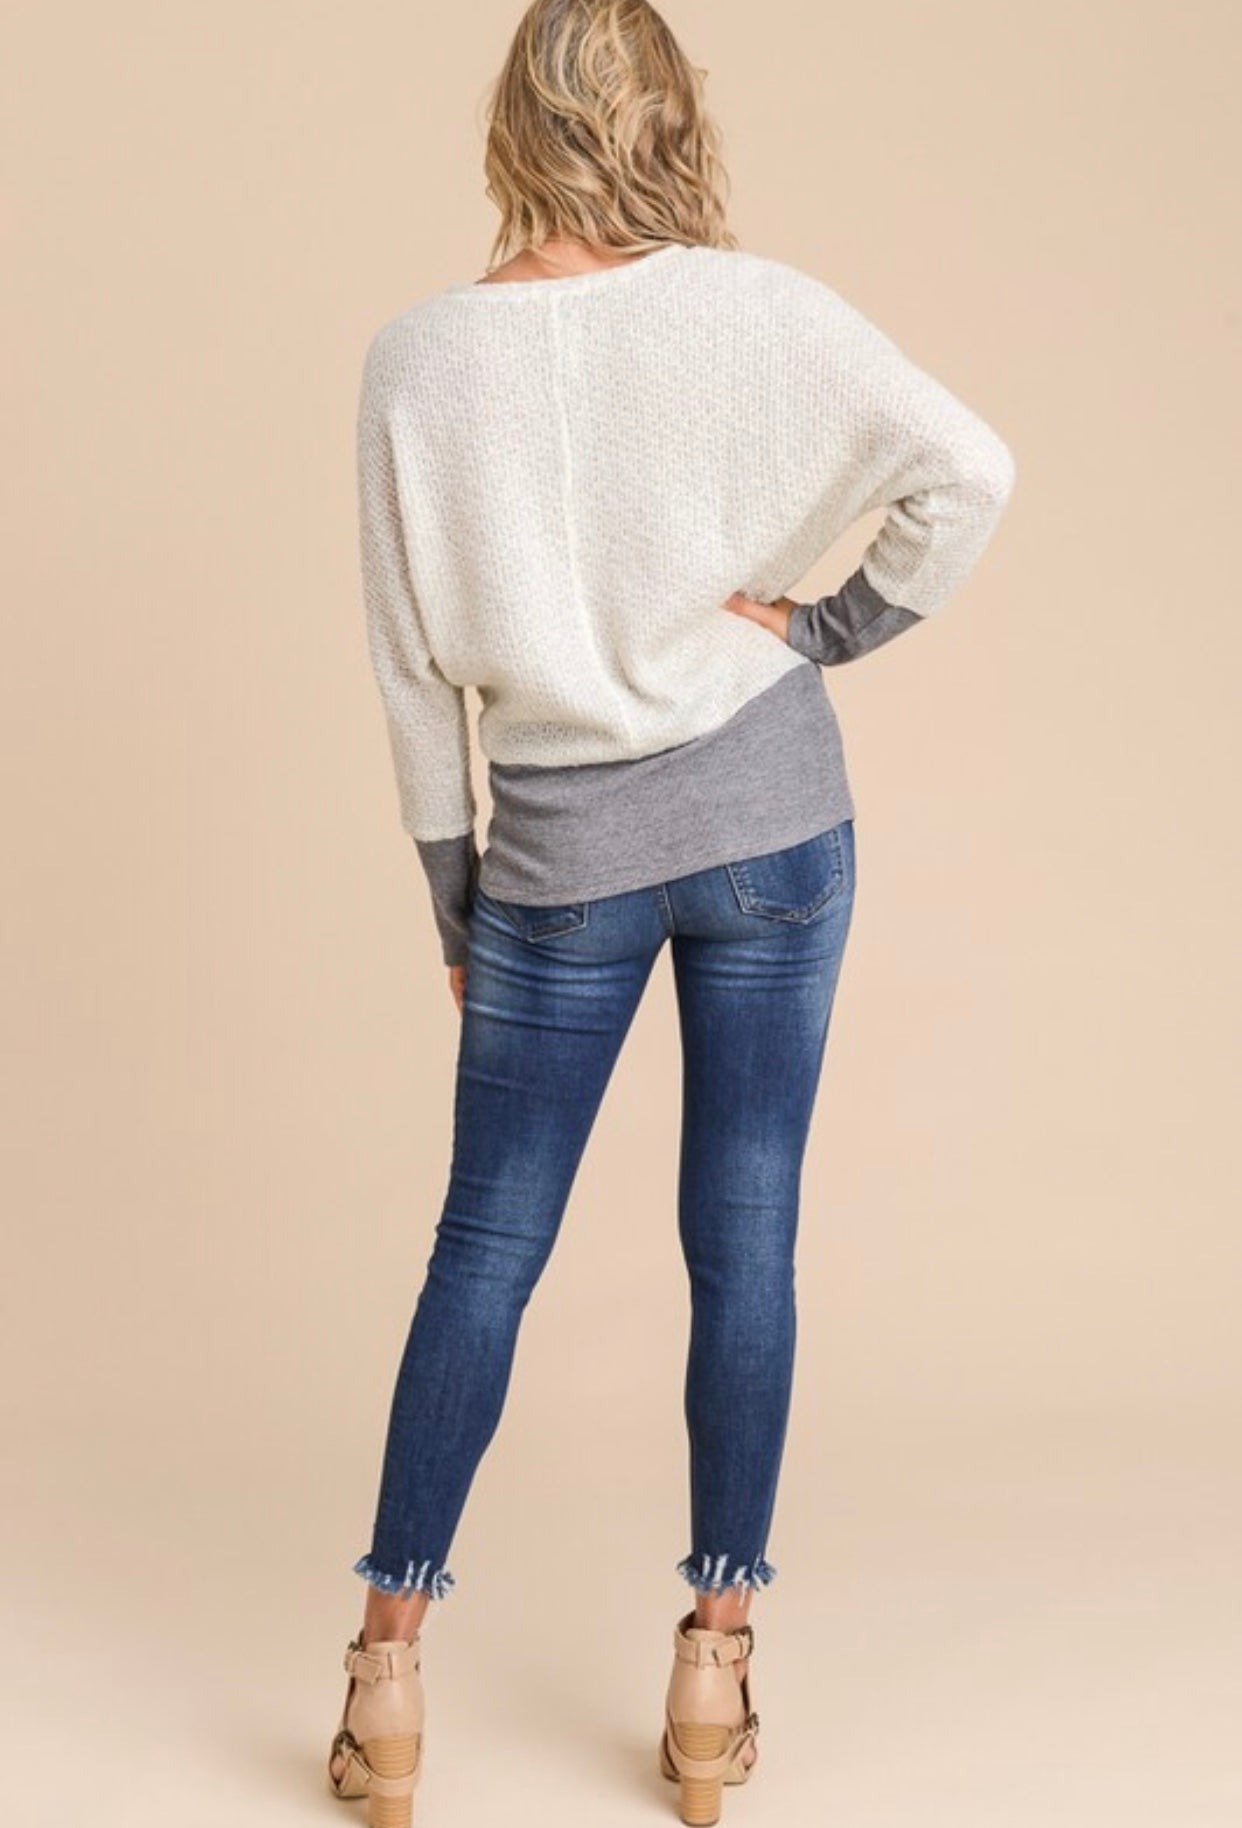 Always Dreamin' Long Sleeve Knit Top